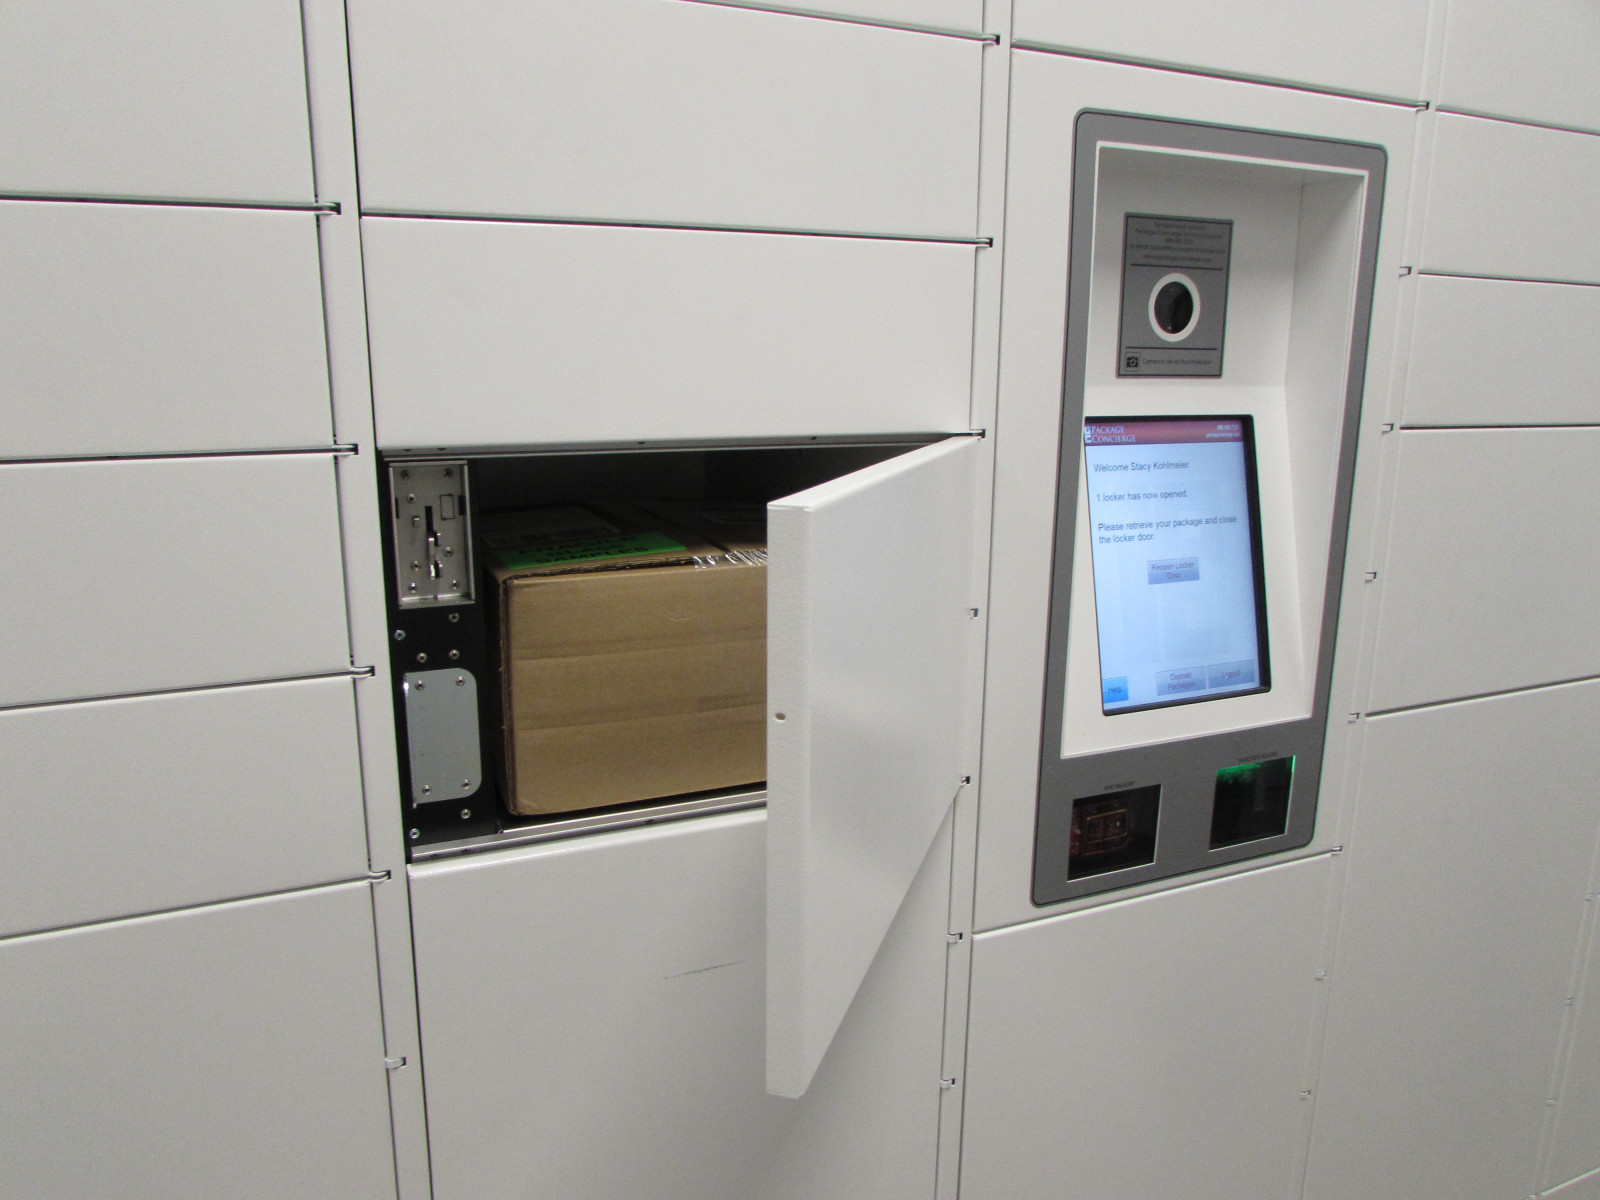 Open Apartment Locker Showing Package